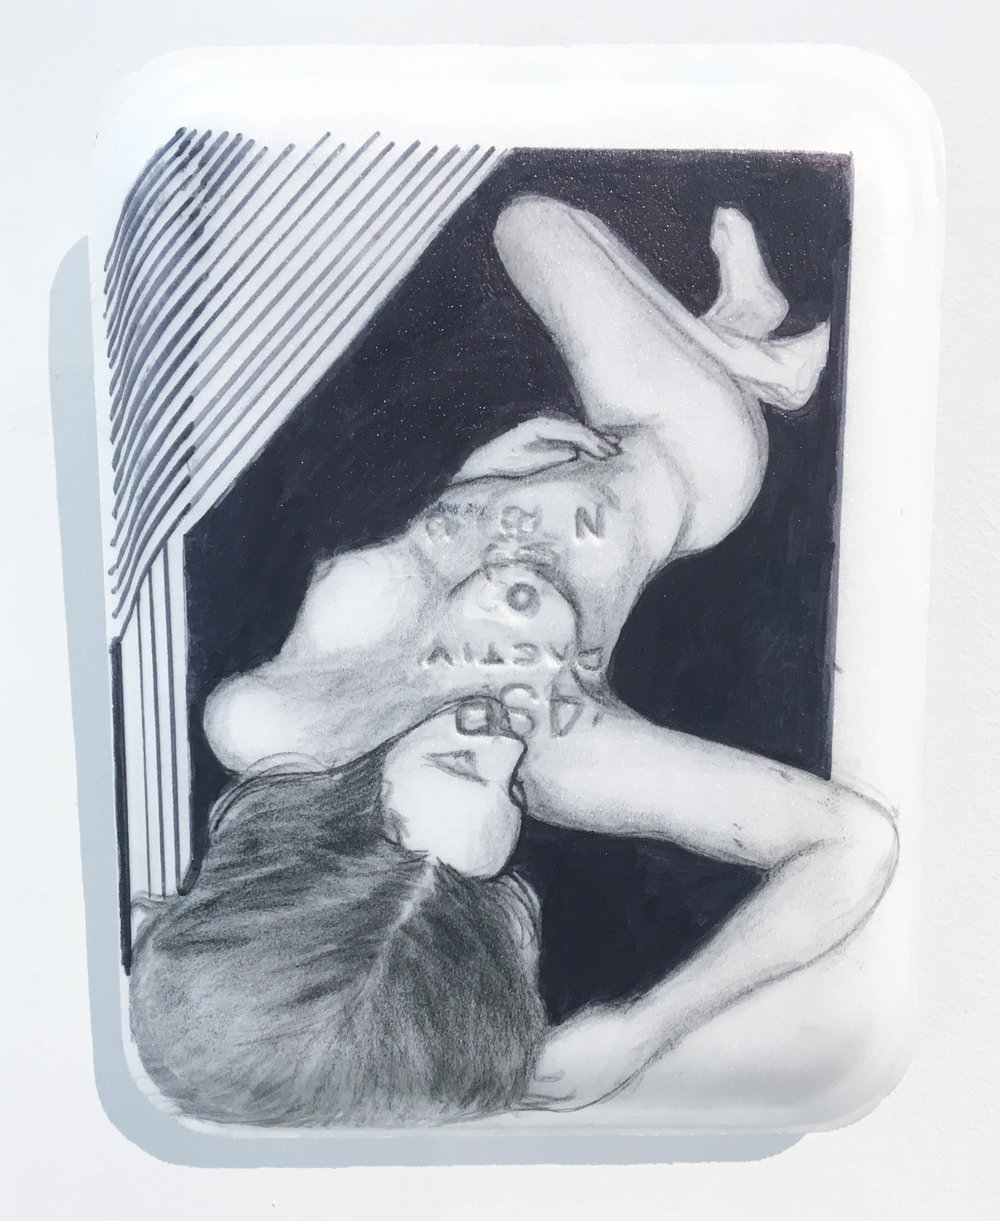 <b>Untitled 2</b><br>Sharpie, gesso, graphite and acrylic on Styrofoam meat tray<br>10.5 x 8 in.